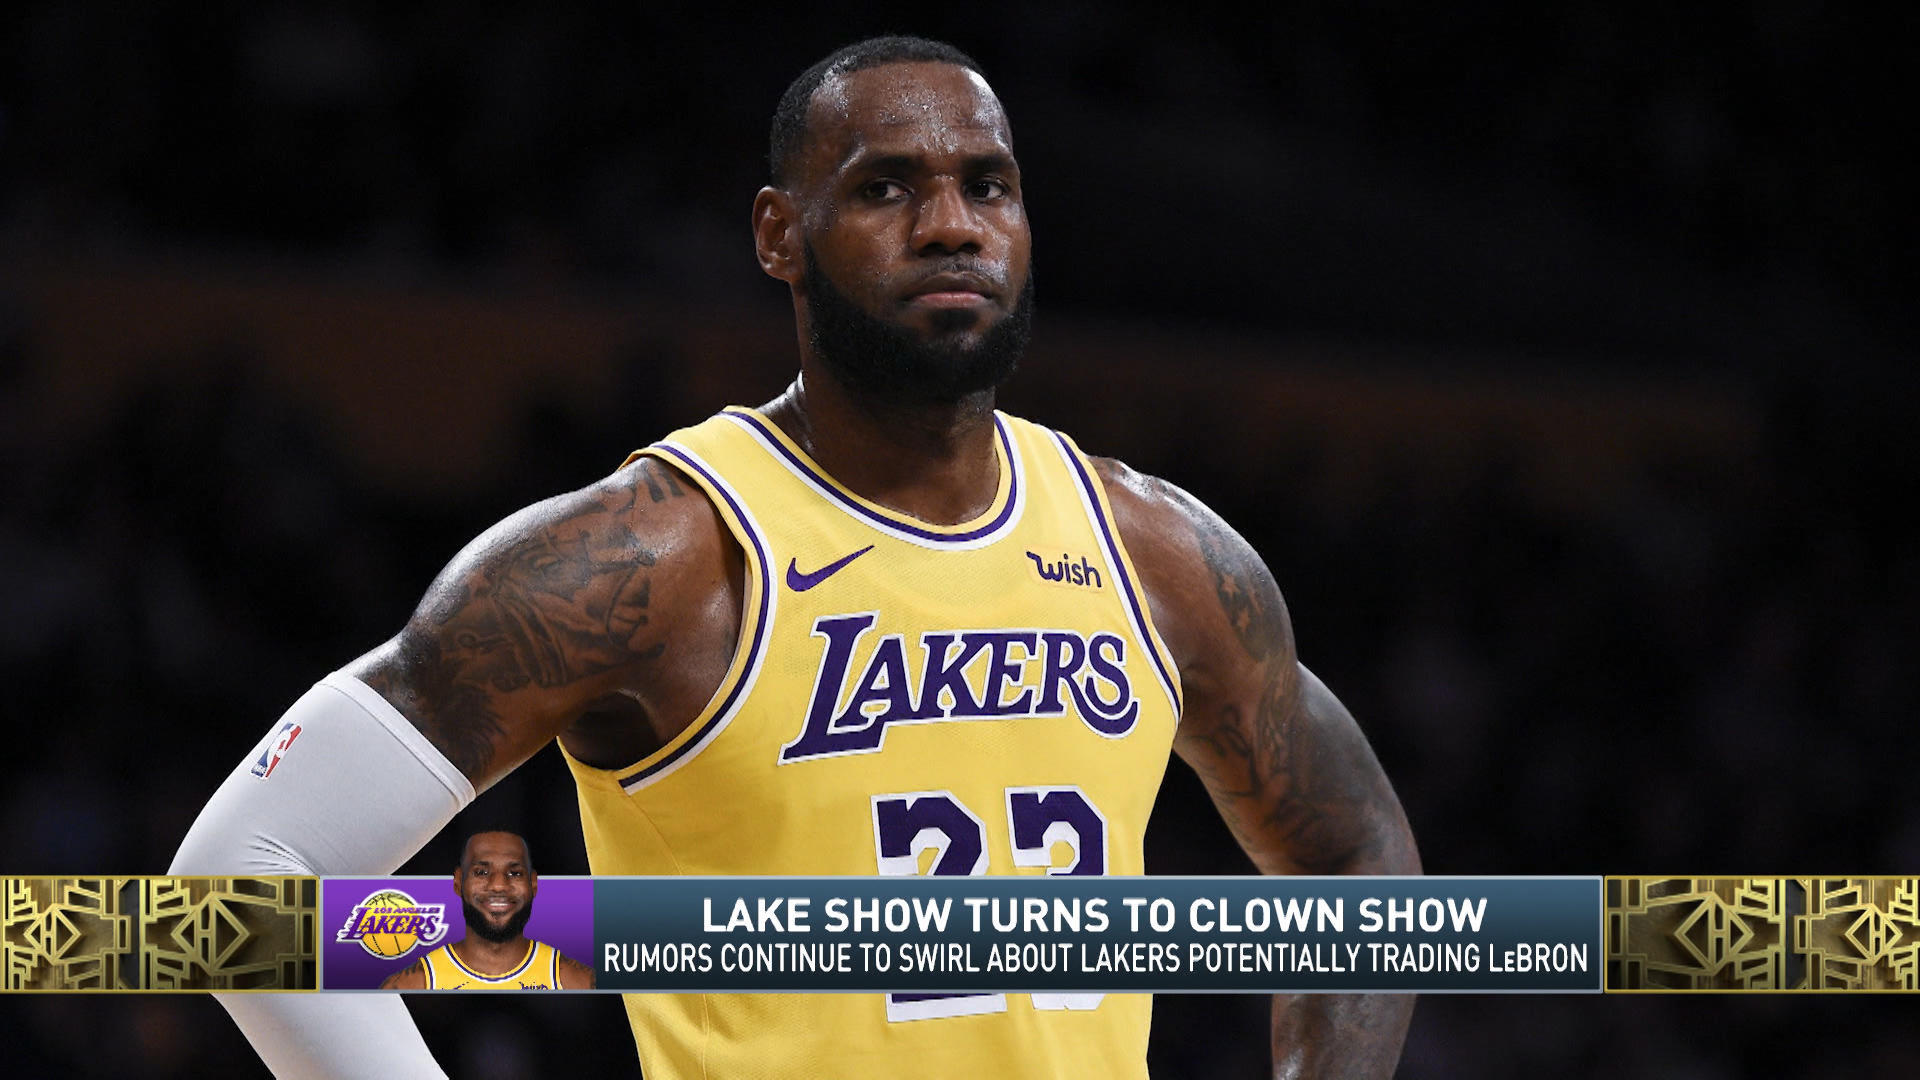 LeBron James reportedly happy in Los Angeles despite Lakers dysfunction, wants to play in city for the rest of his career